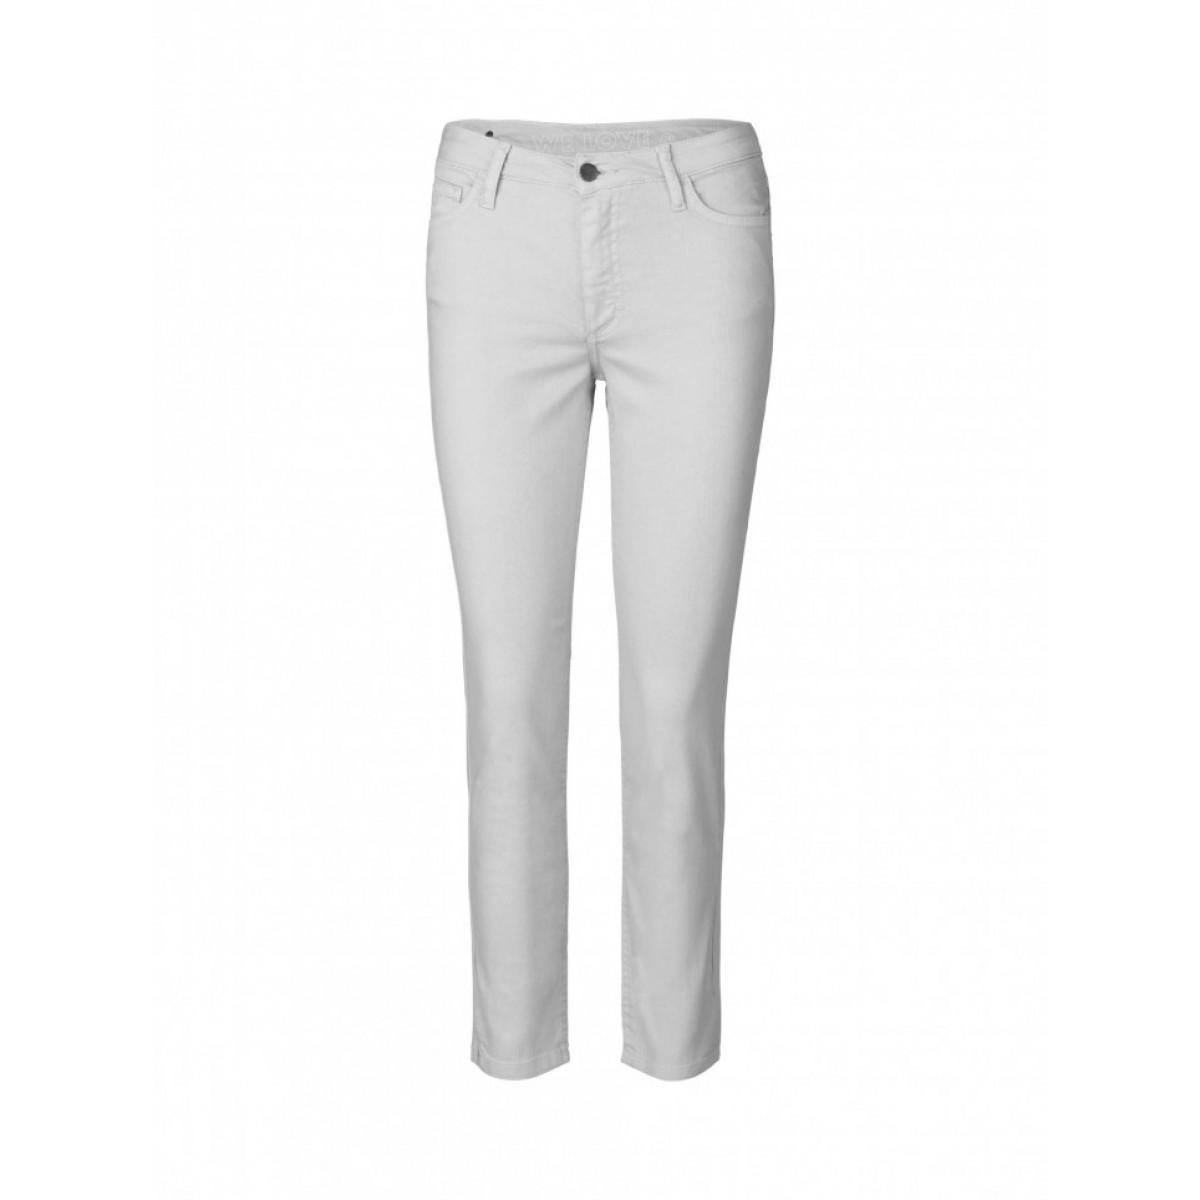 We Love Jeans 1609 Capri Whiter Shade of Pale-31